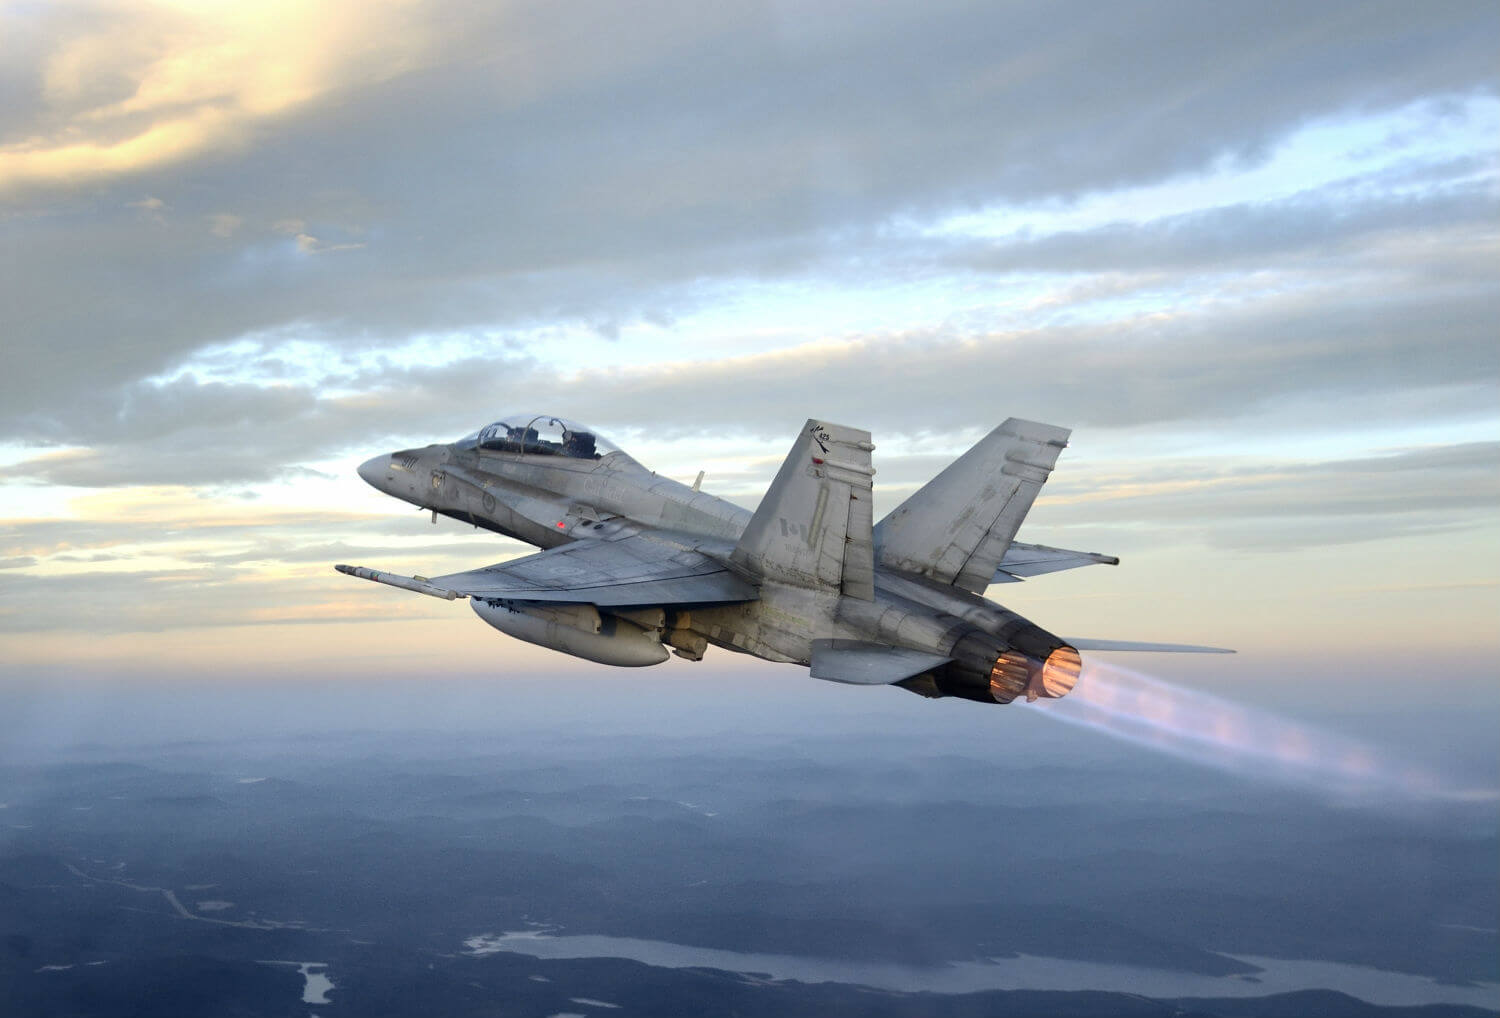 A CF-188 Hornet in flight